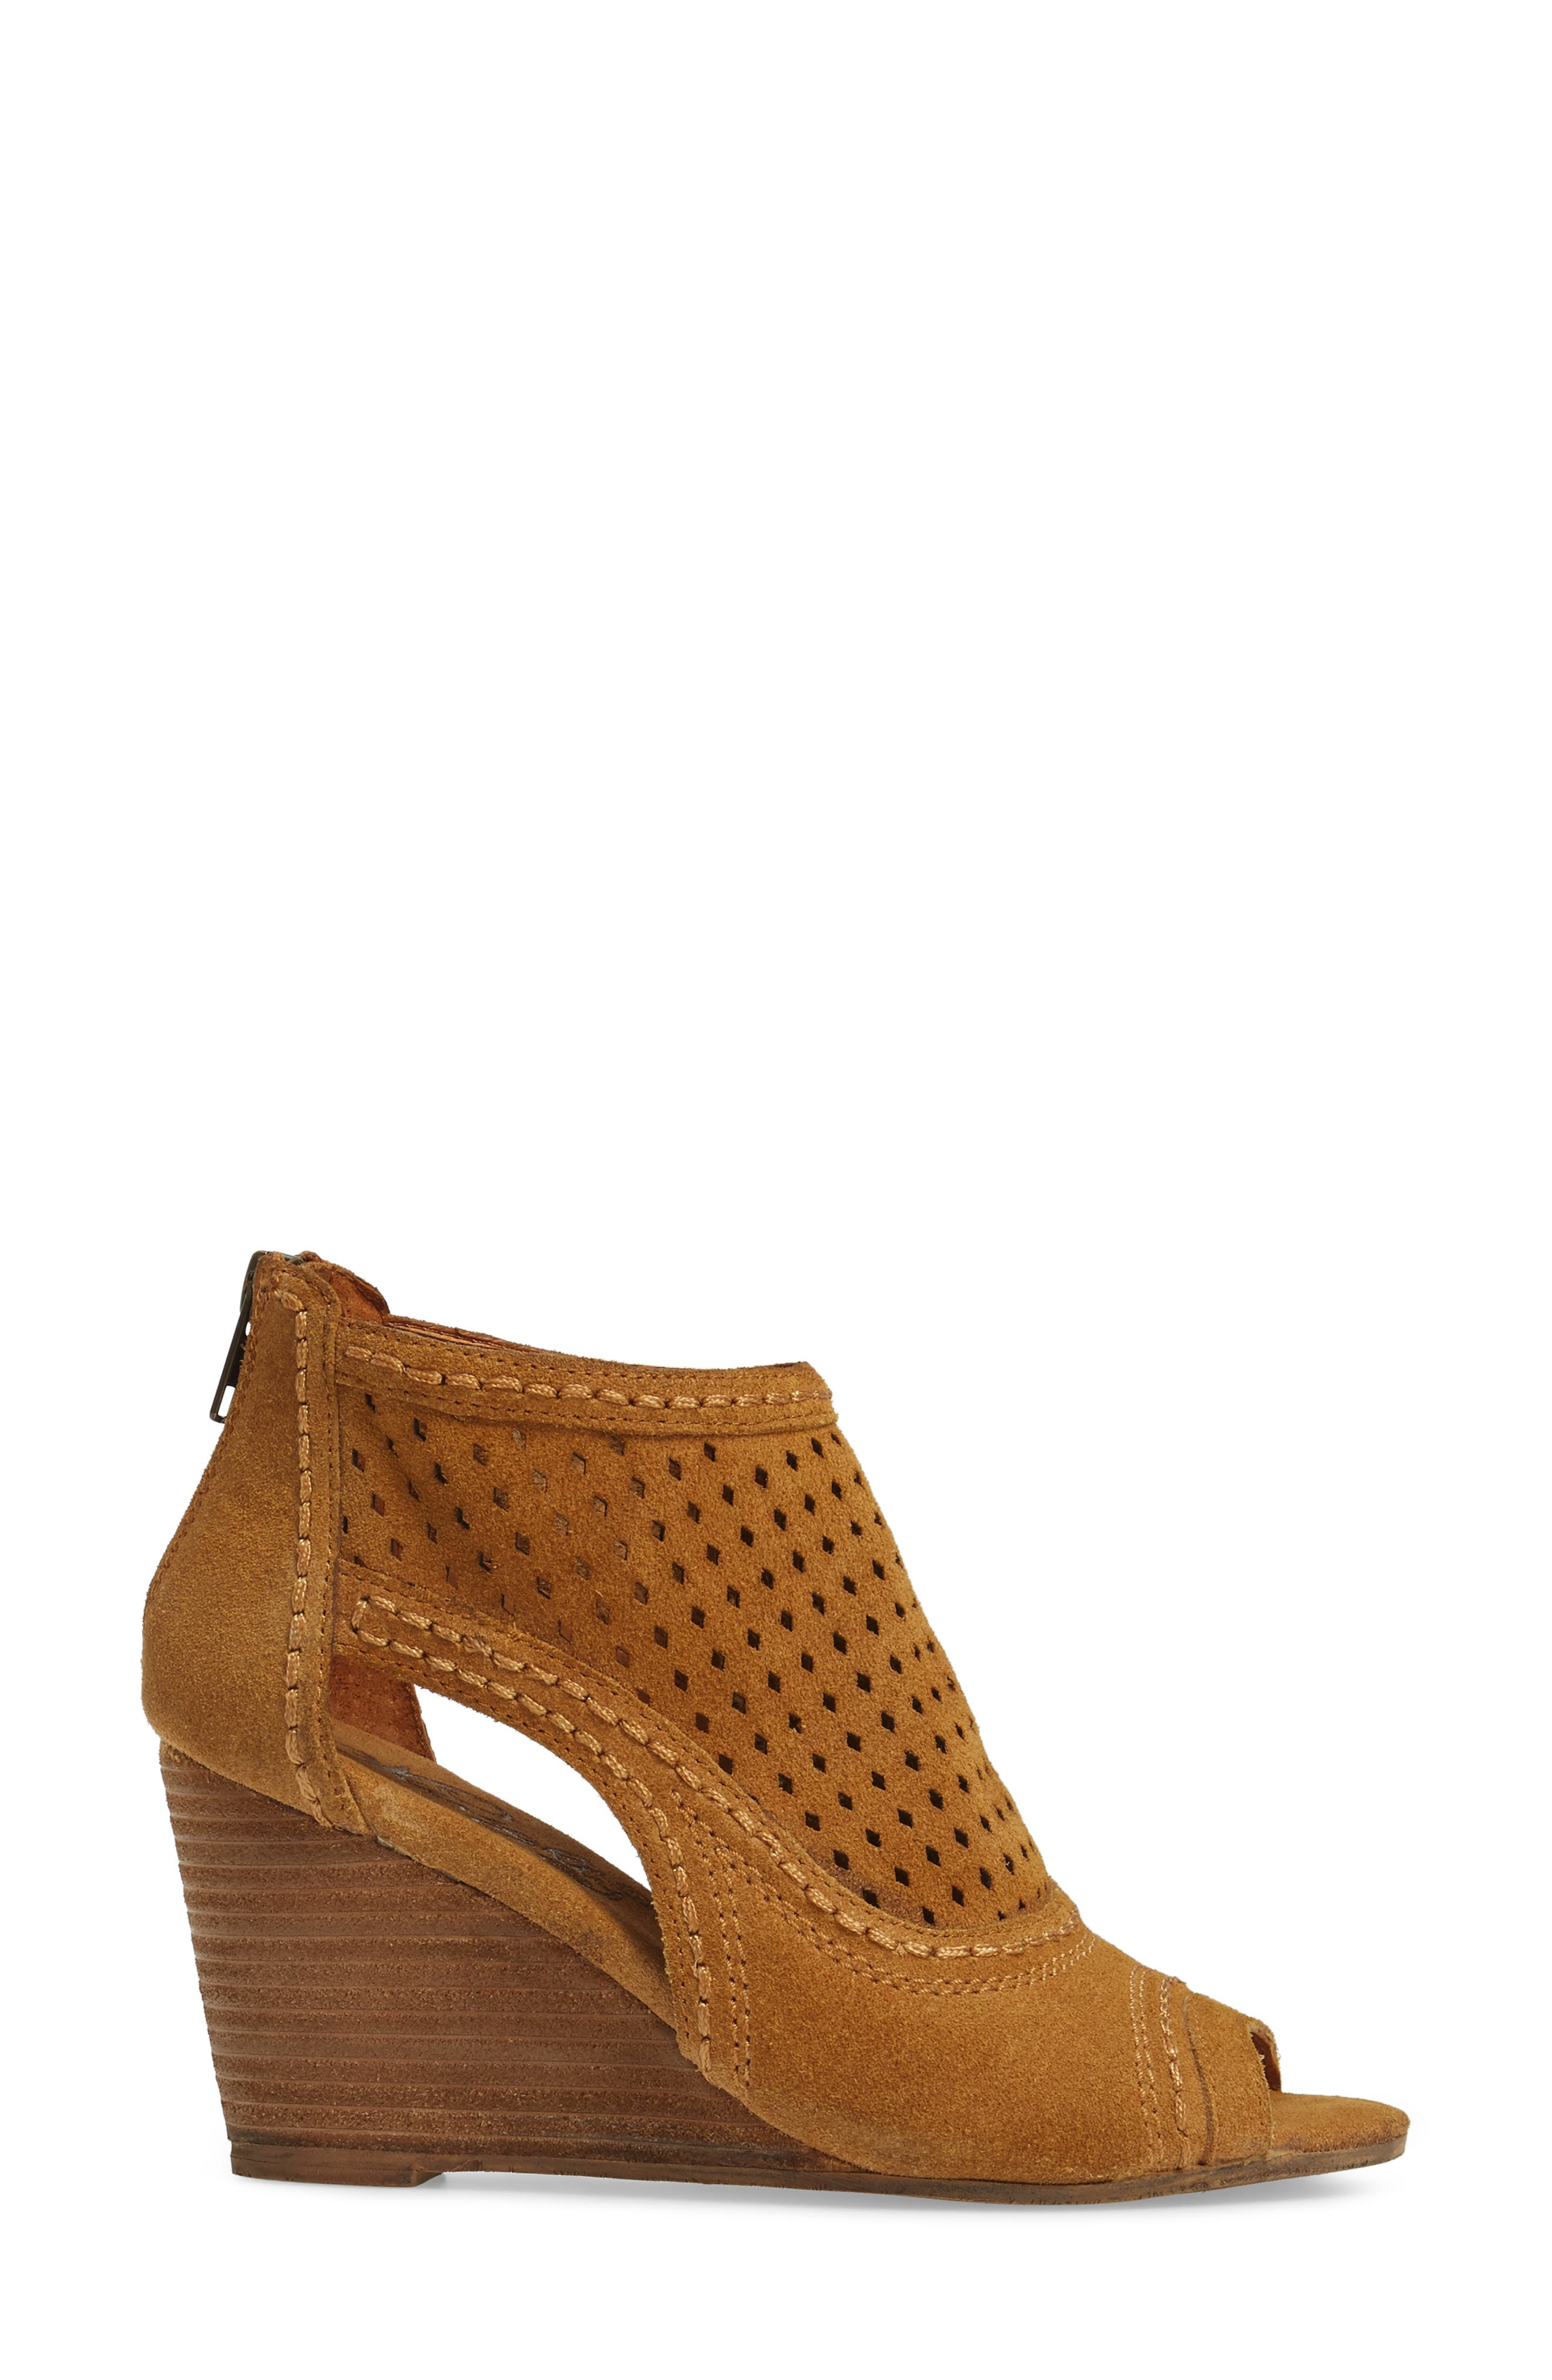 Sharon Perforated Wedge Sandal,                             Alternate thumbnail 3, color,                             Sandcastle Suede